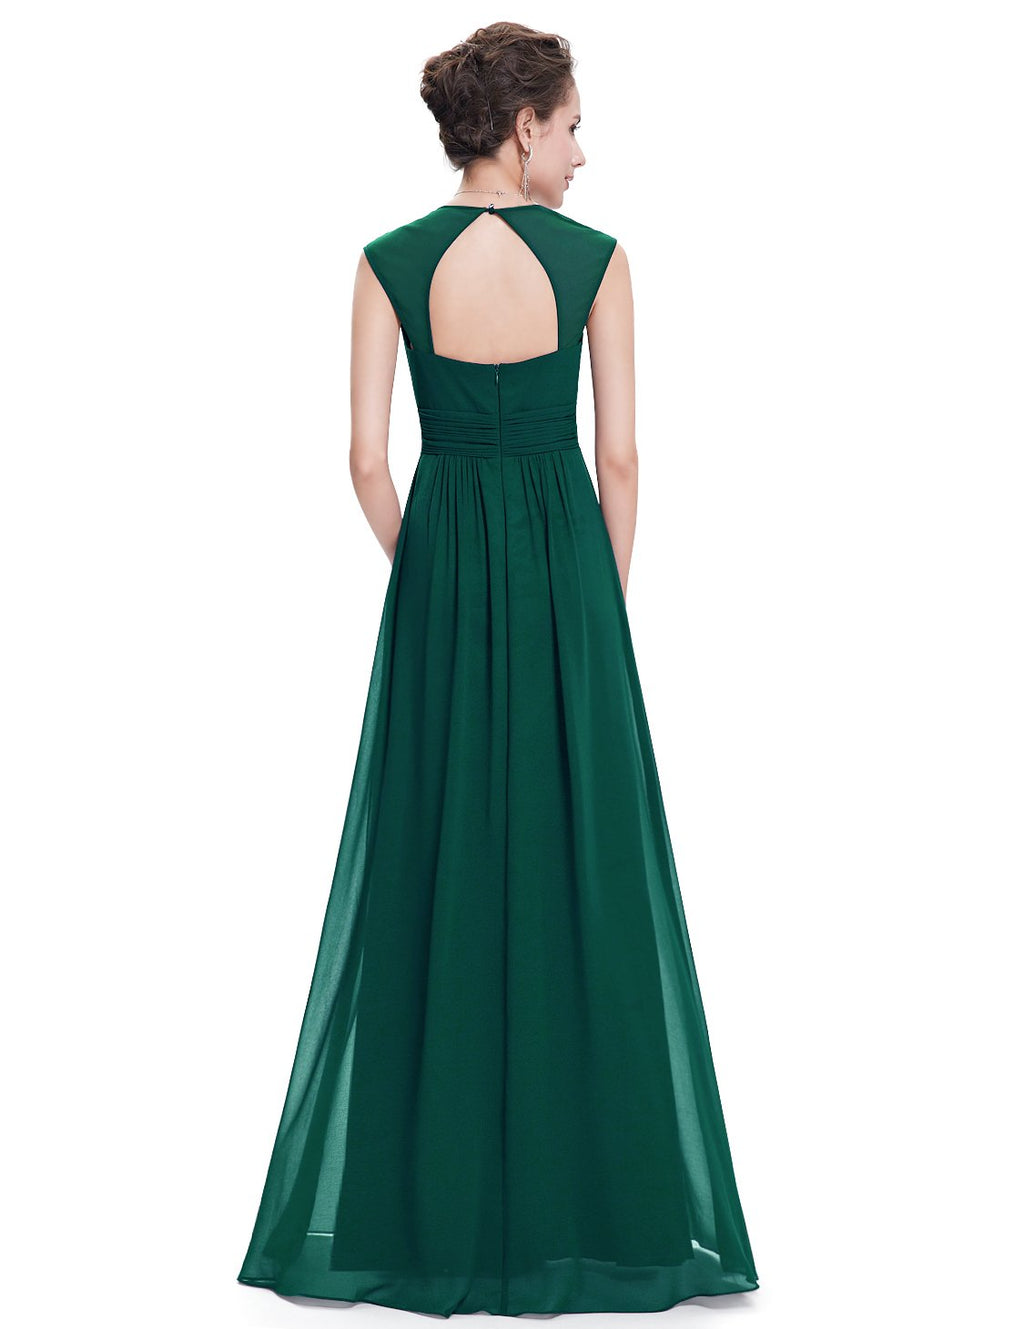 Sexy Neckline Dress Dark Green